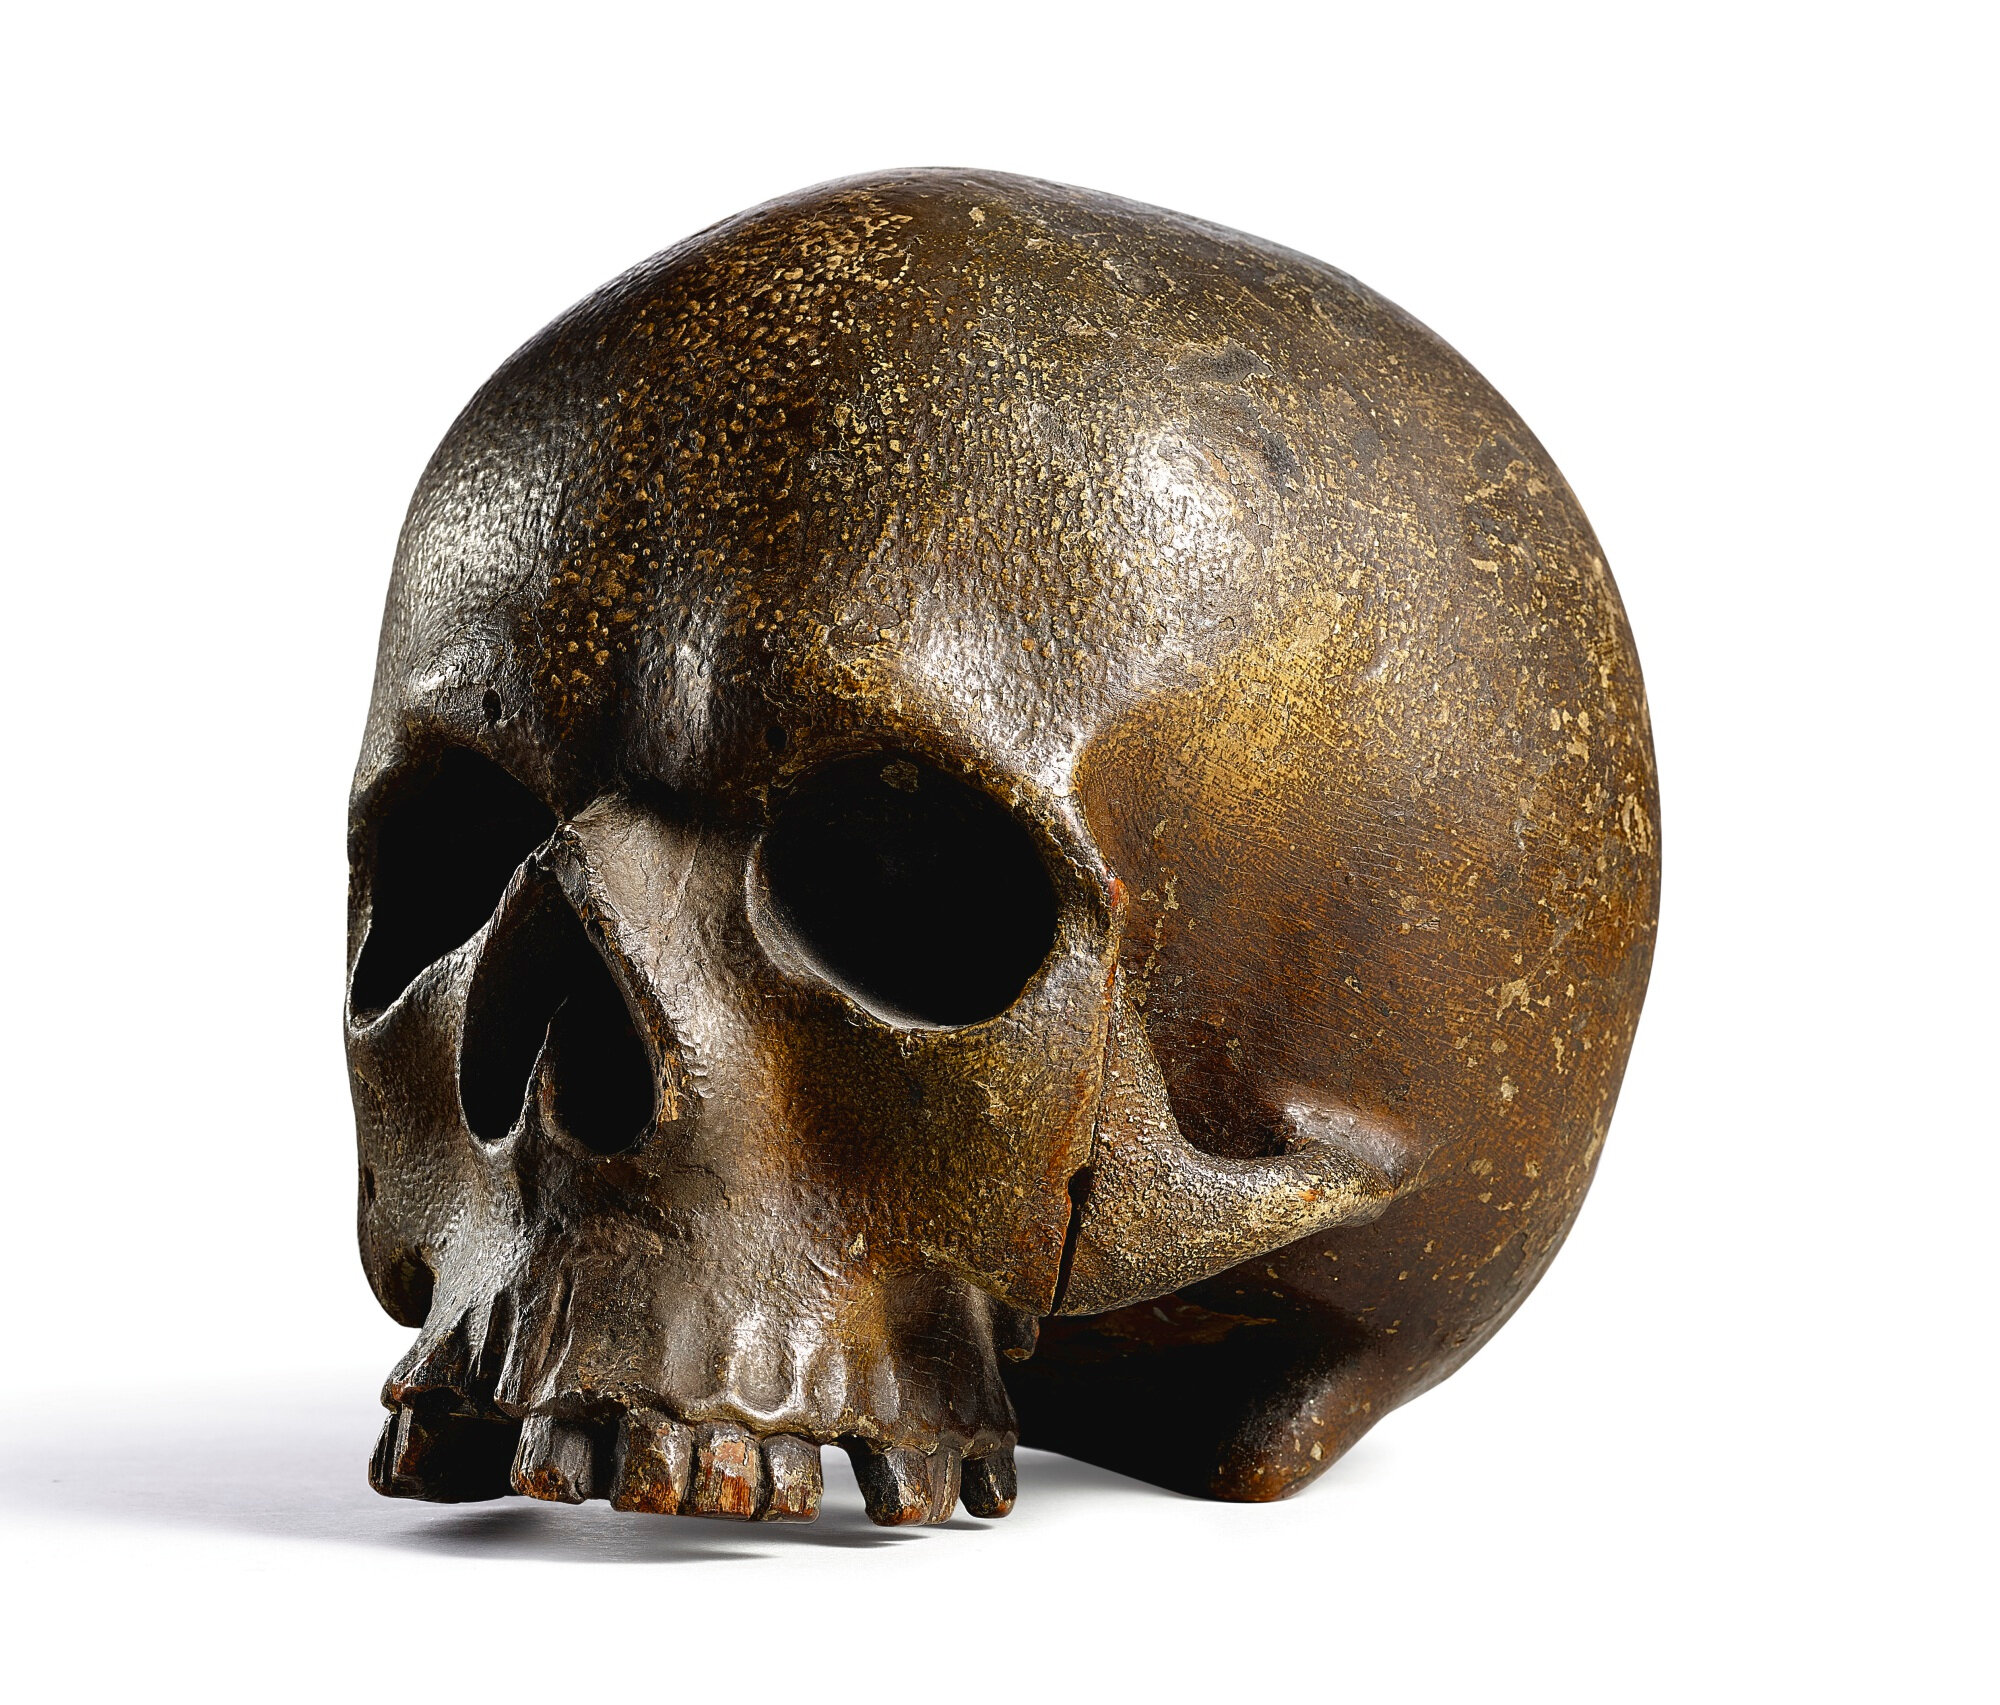 A carved wood memento mori skull, Germany, 16th century